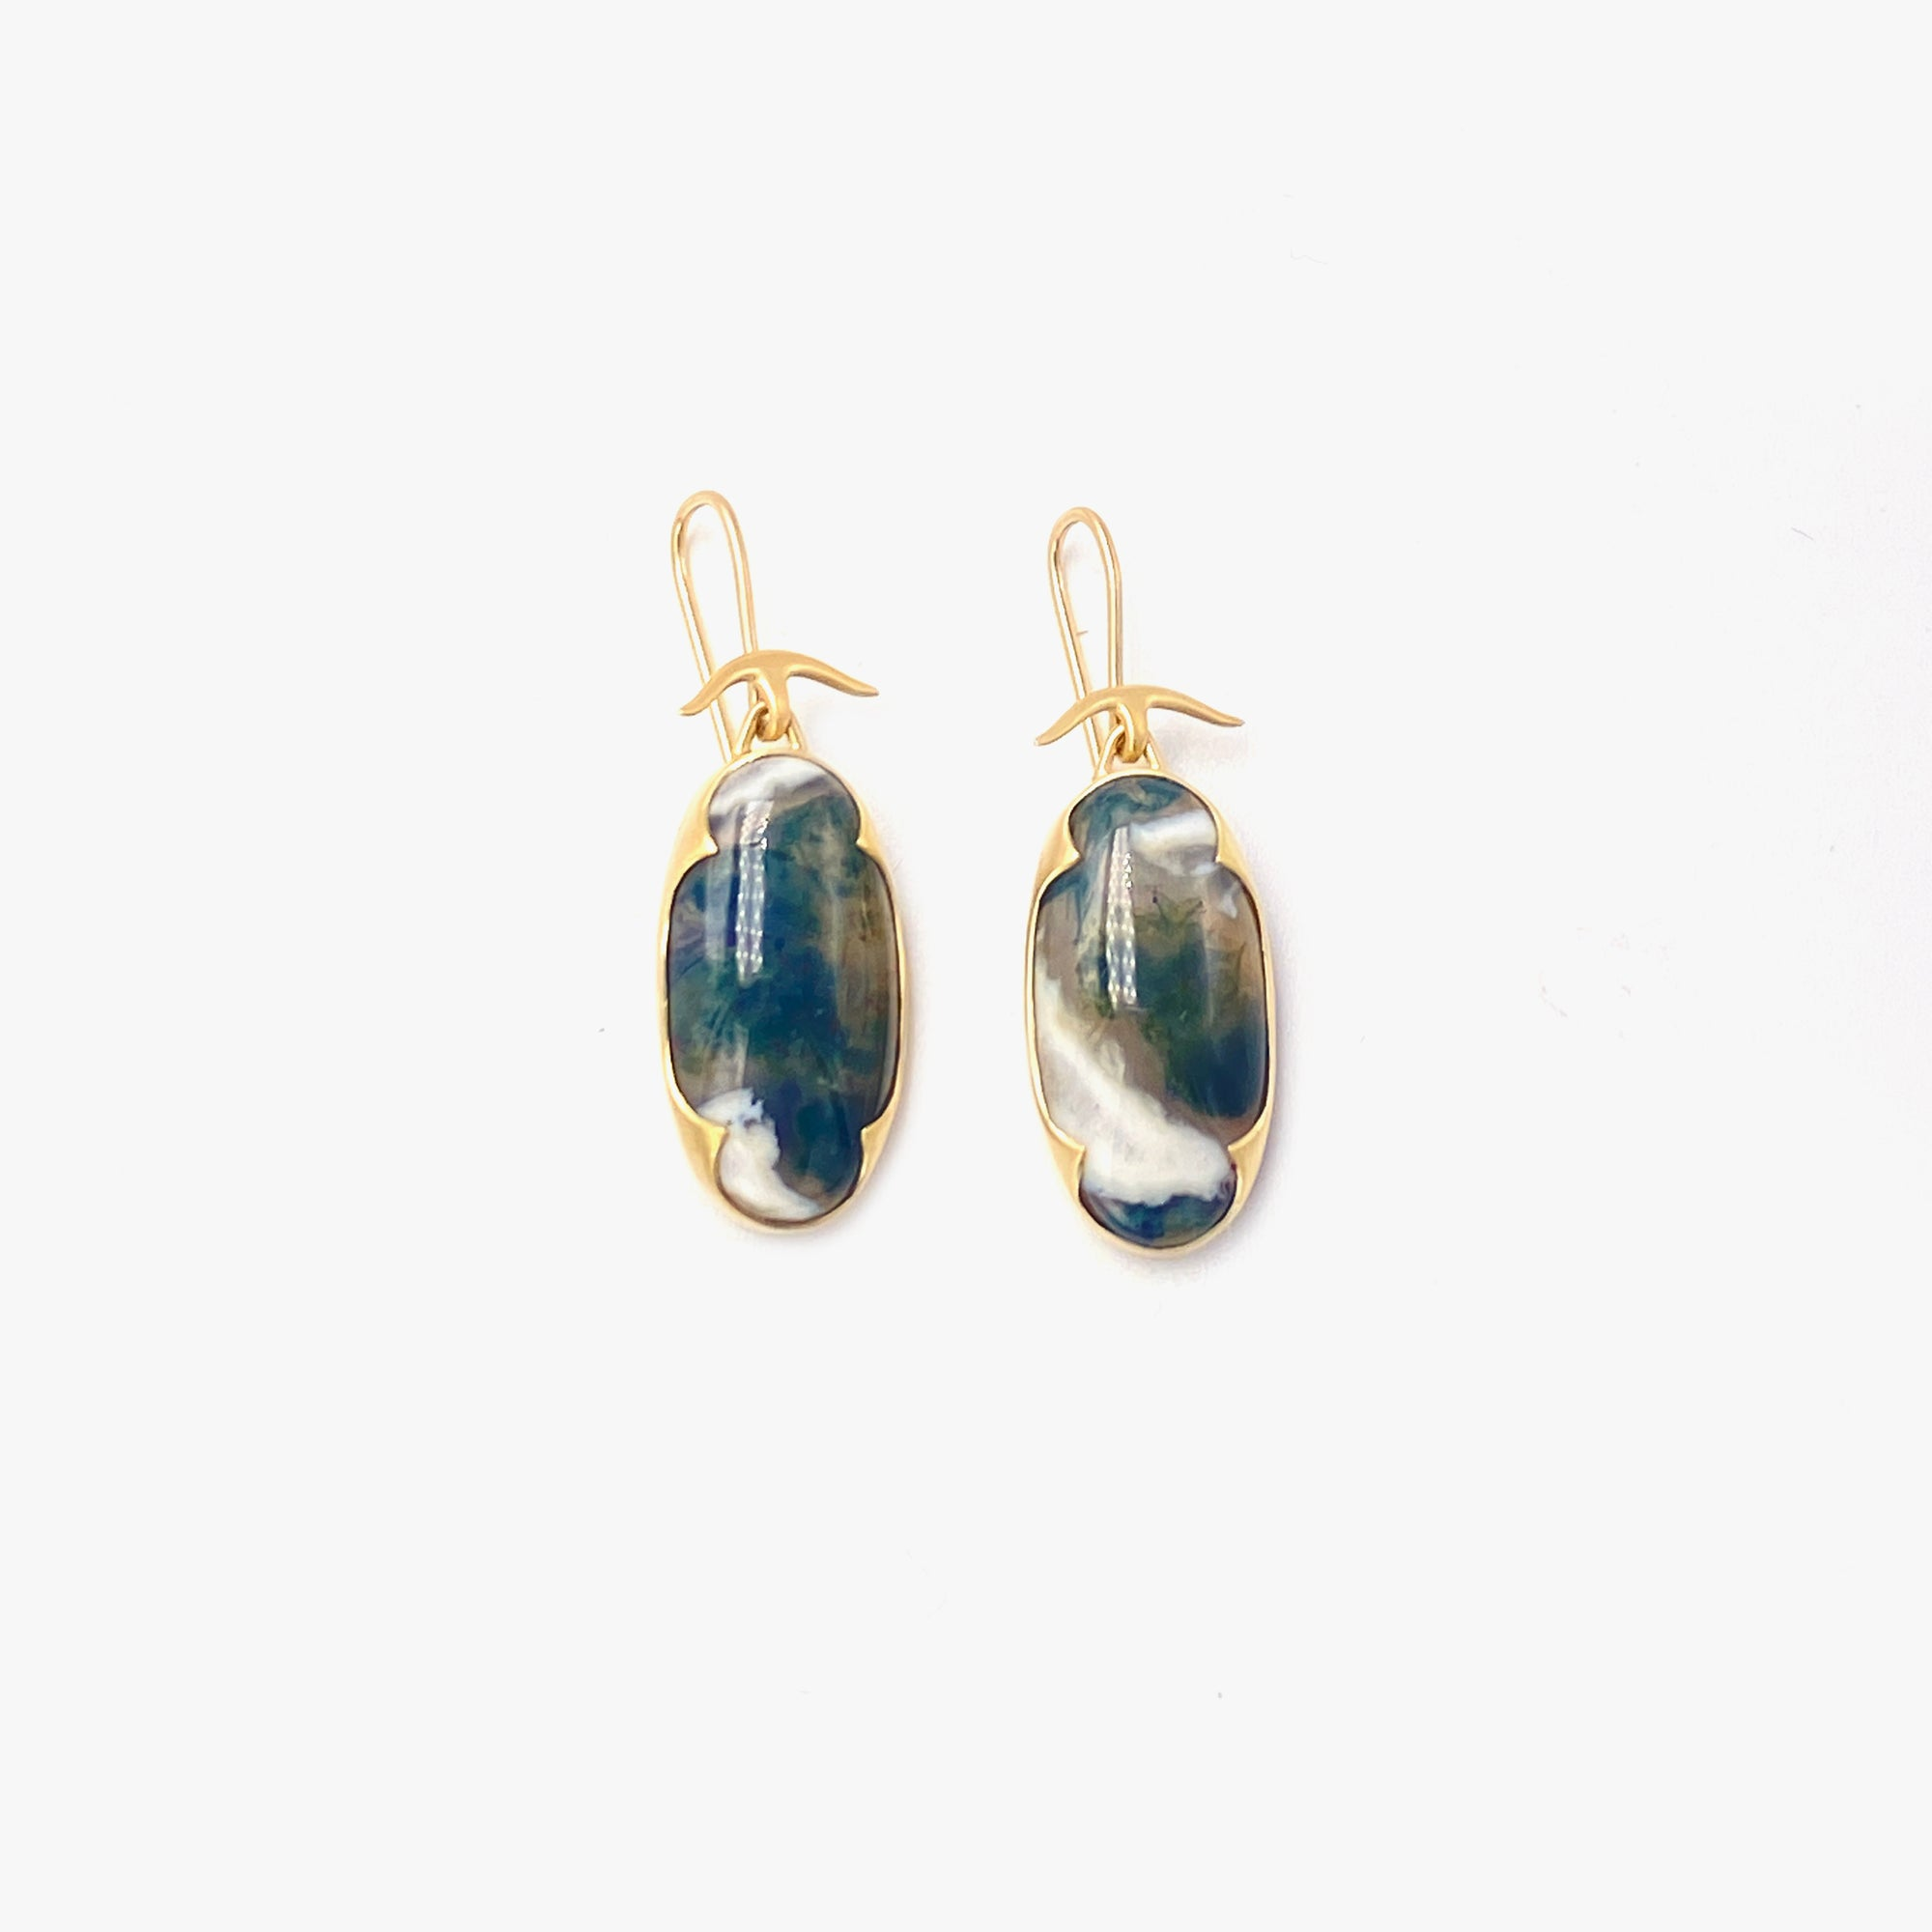 Oval Moss Agate Earrings